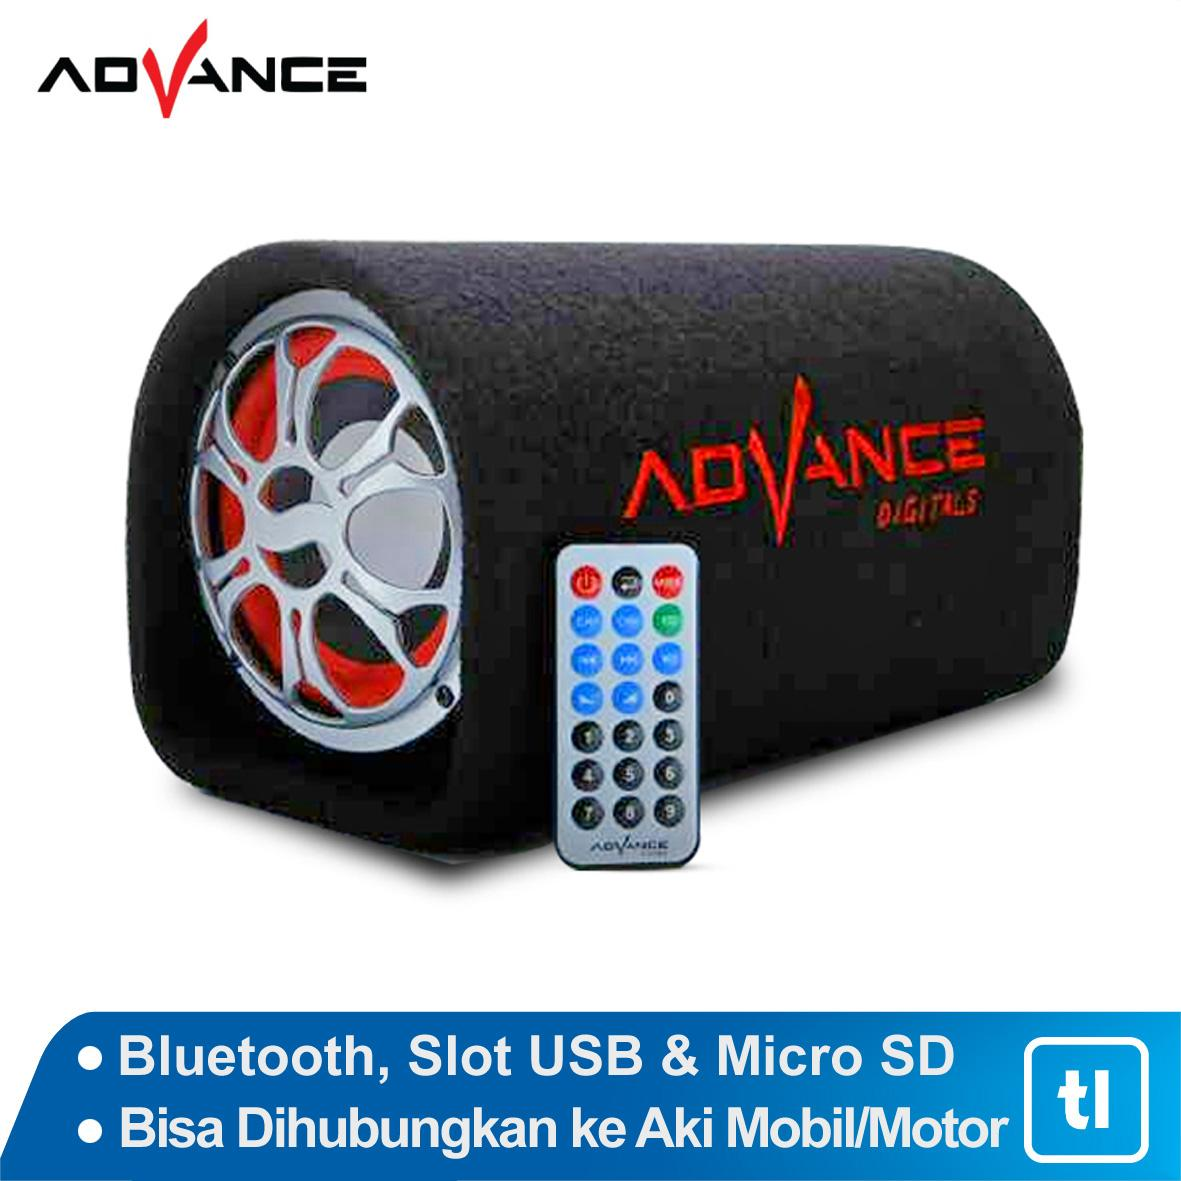 Speaker Bluetooth Portable Advance Tp600 Original Tp 600 Aktif Subwoofer 5 Inch T 101bt With Murah